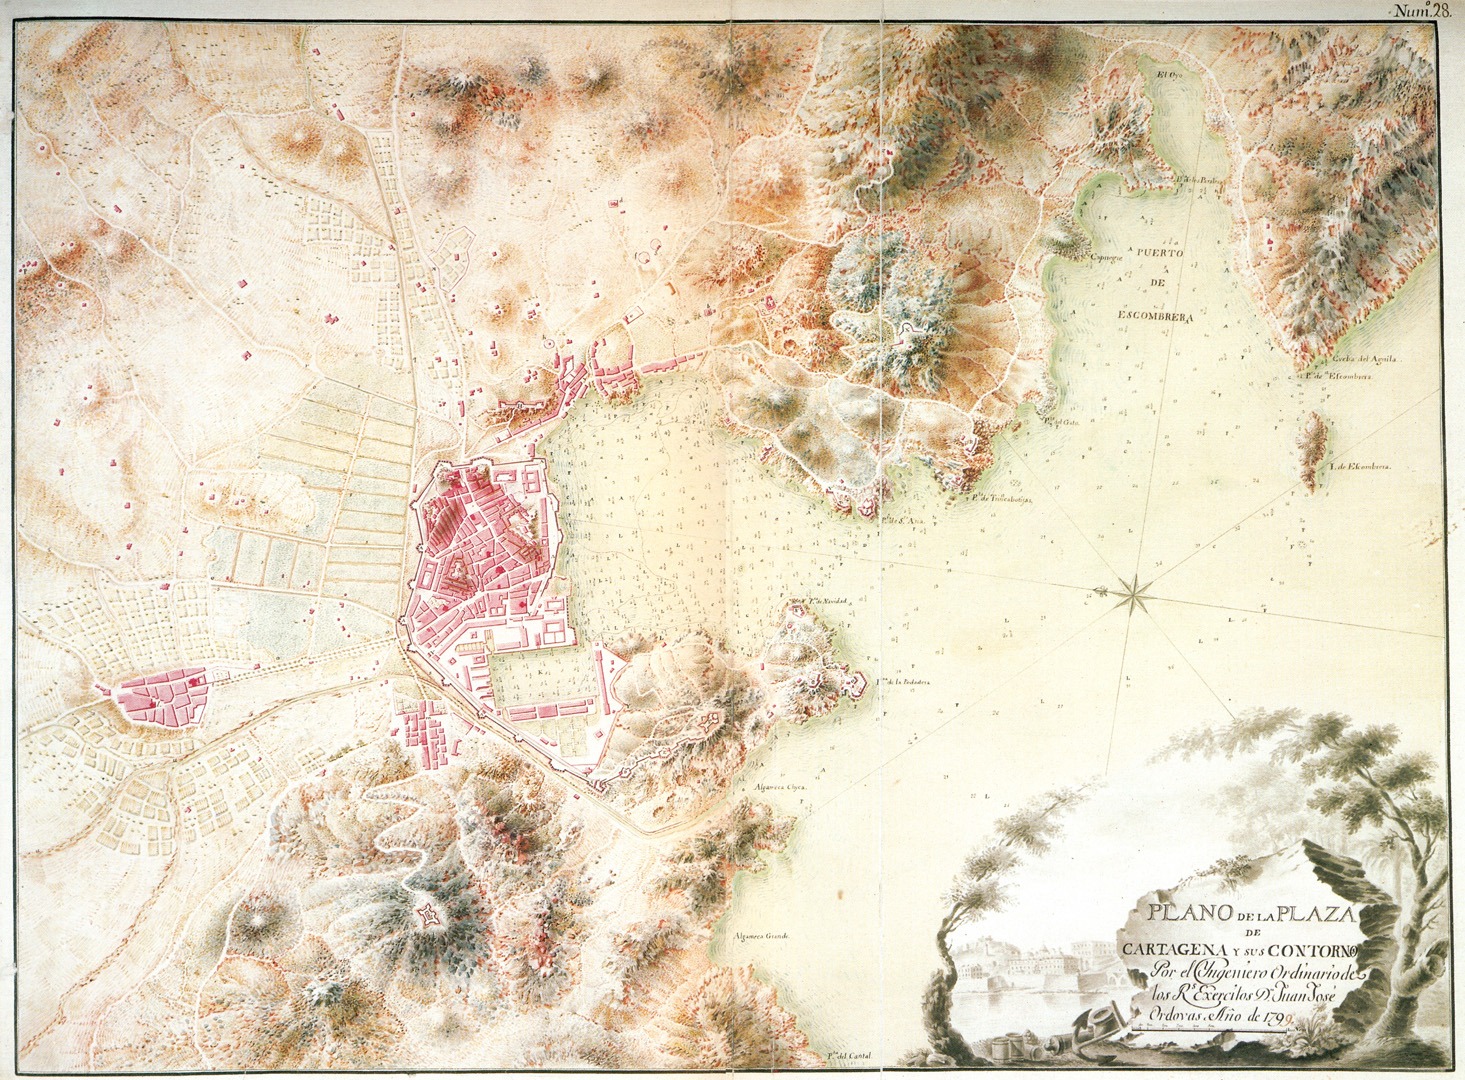 Map of the Plaza of Cartagena and its environs 1799